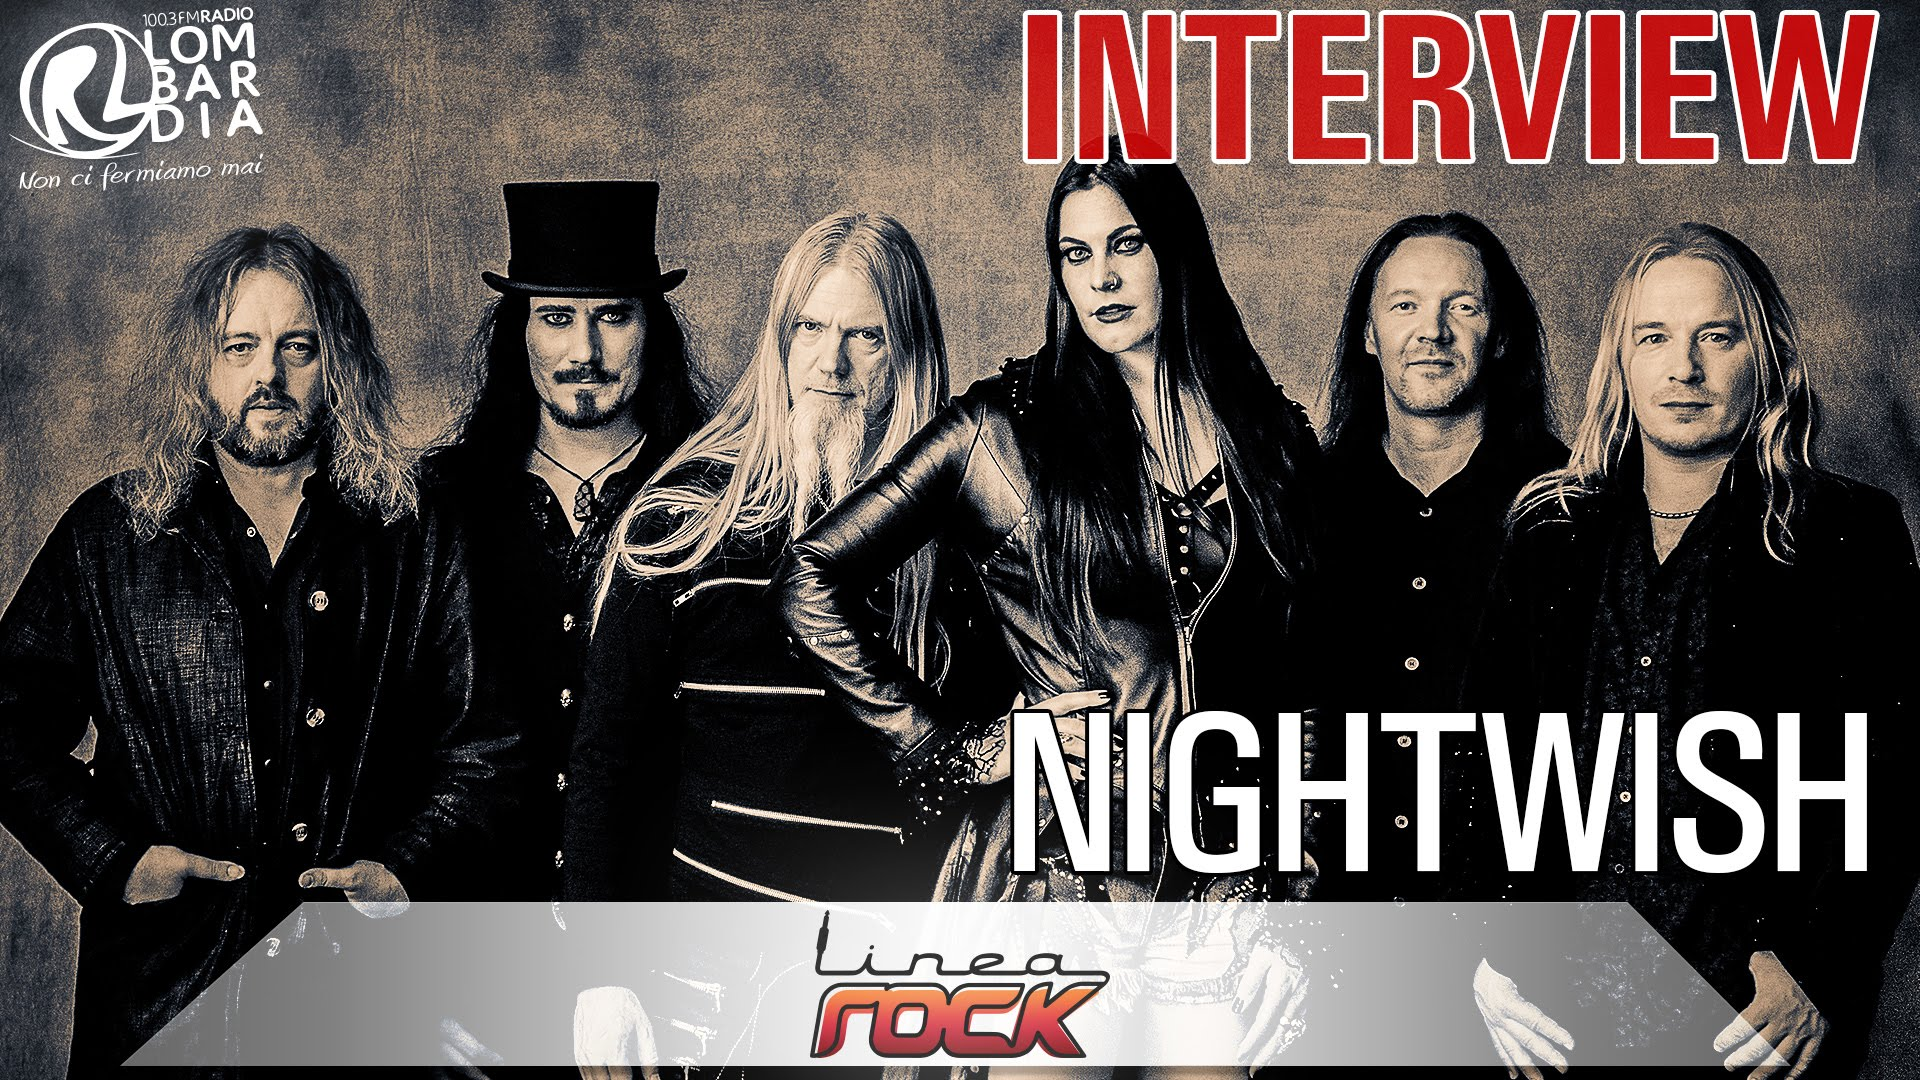 Nightwish - interview 2015 @Linea Rock - by Barbara Caserta